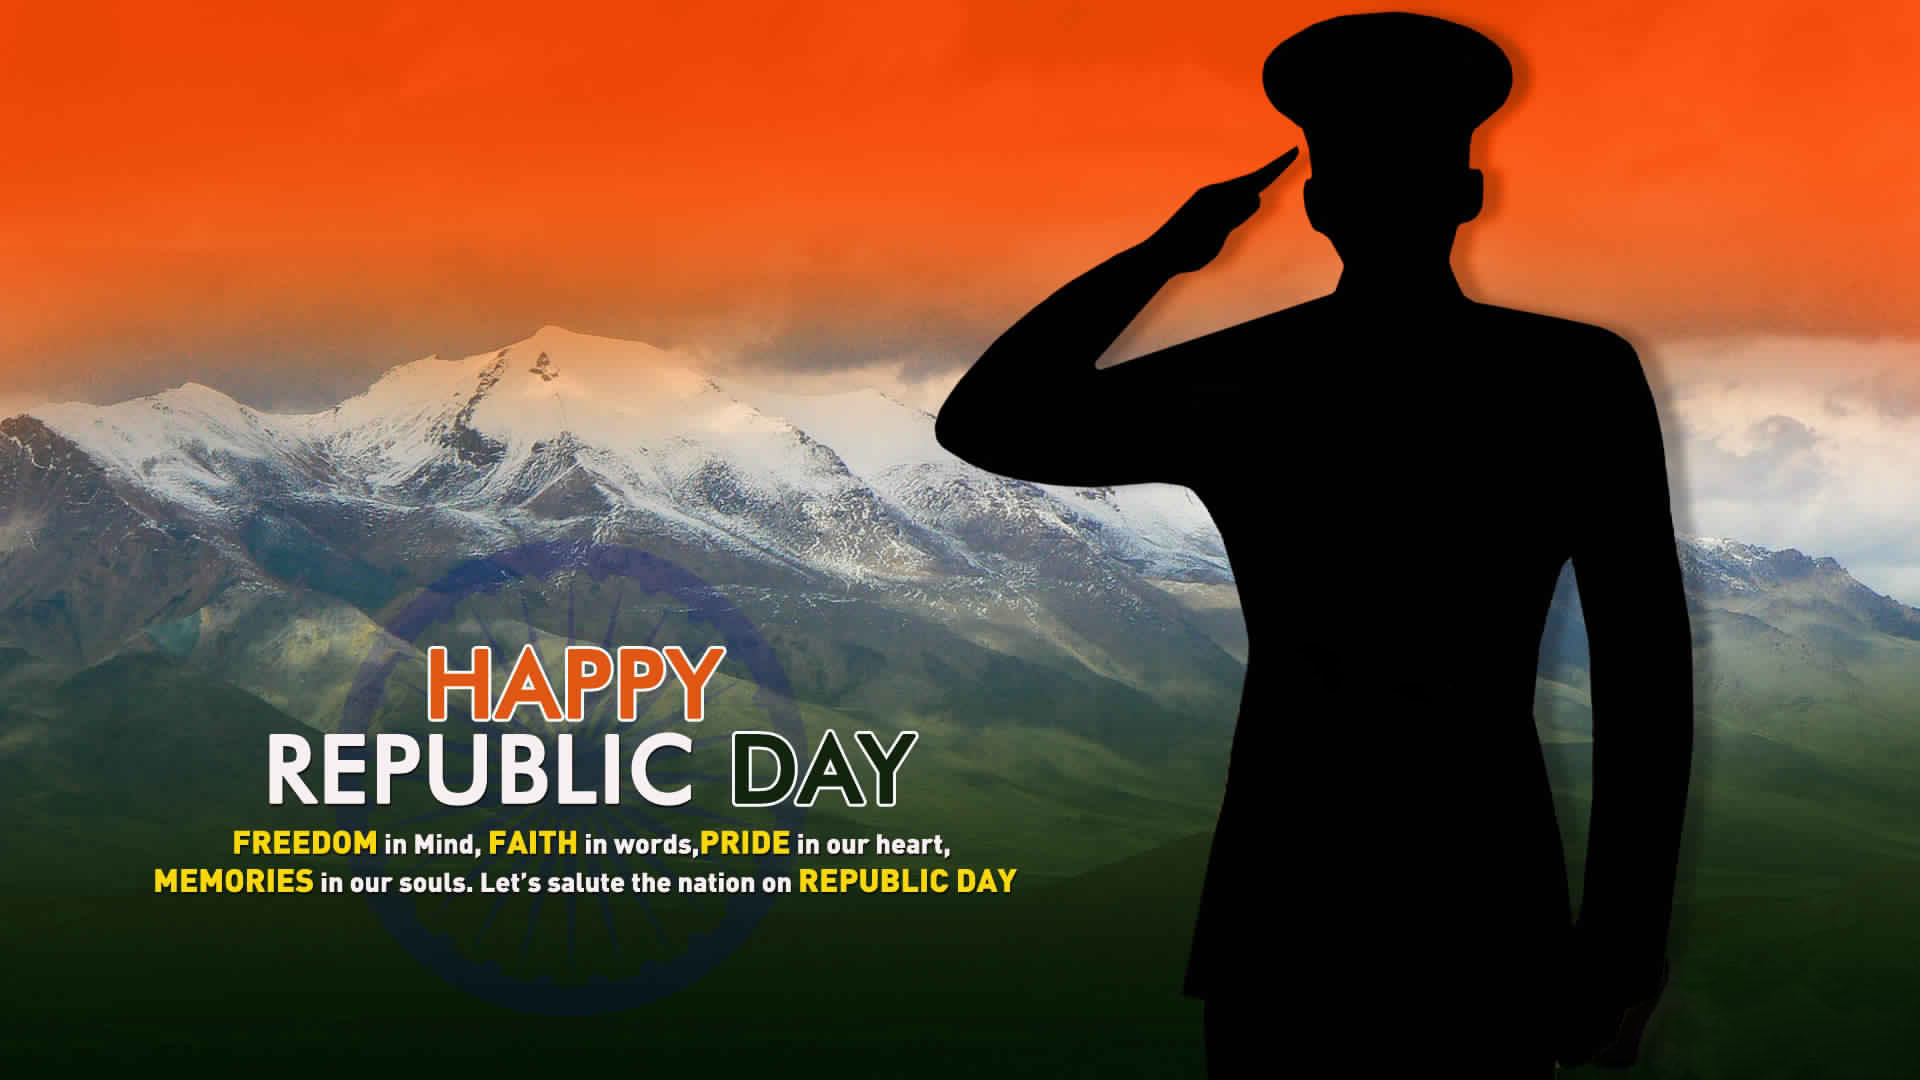 Jai Hind 26 January Happy Republic Day Hd Wallpapers